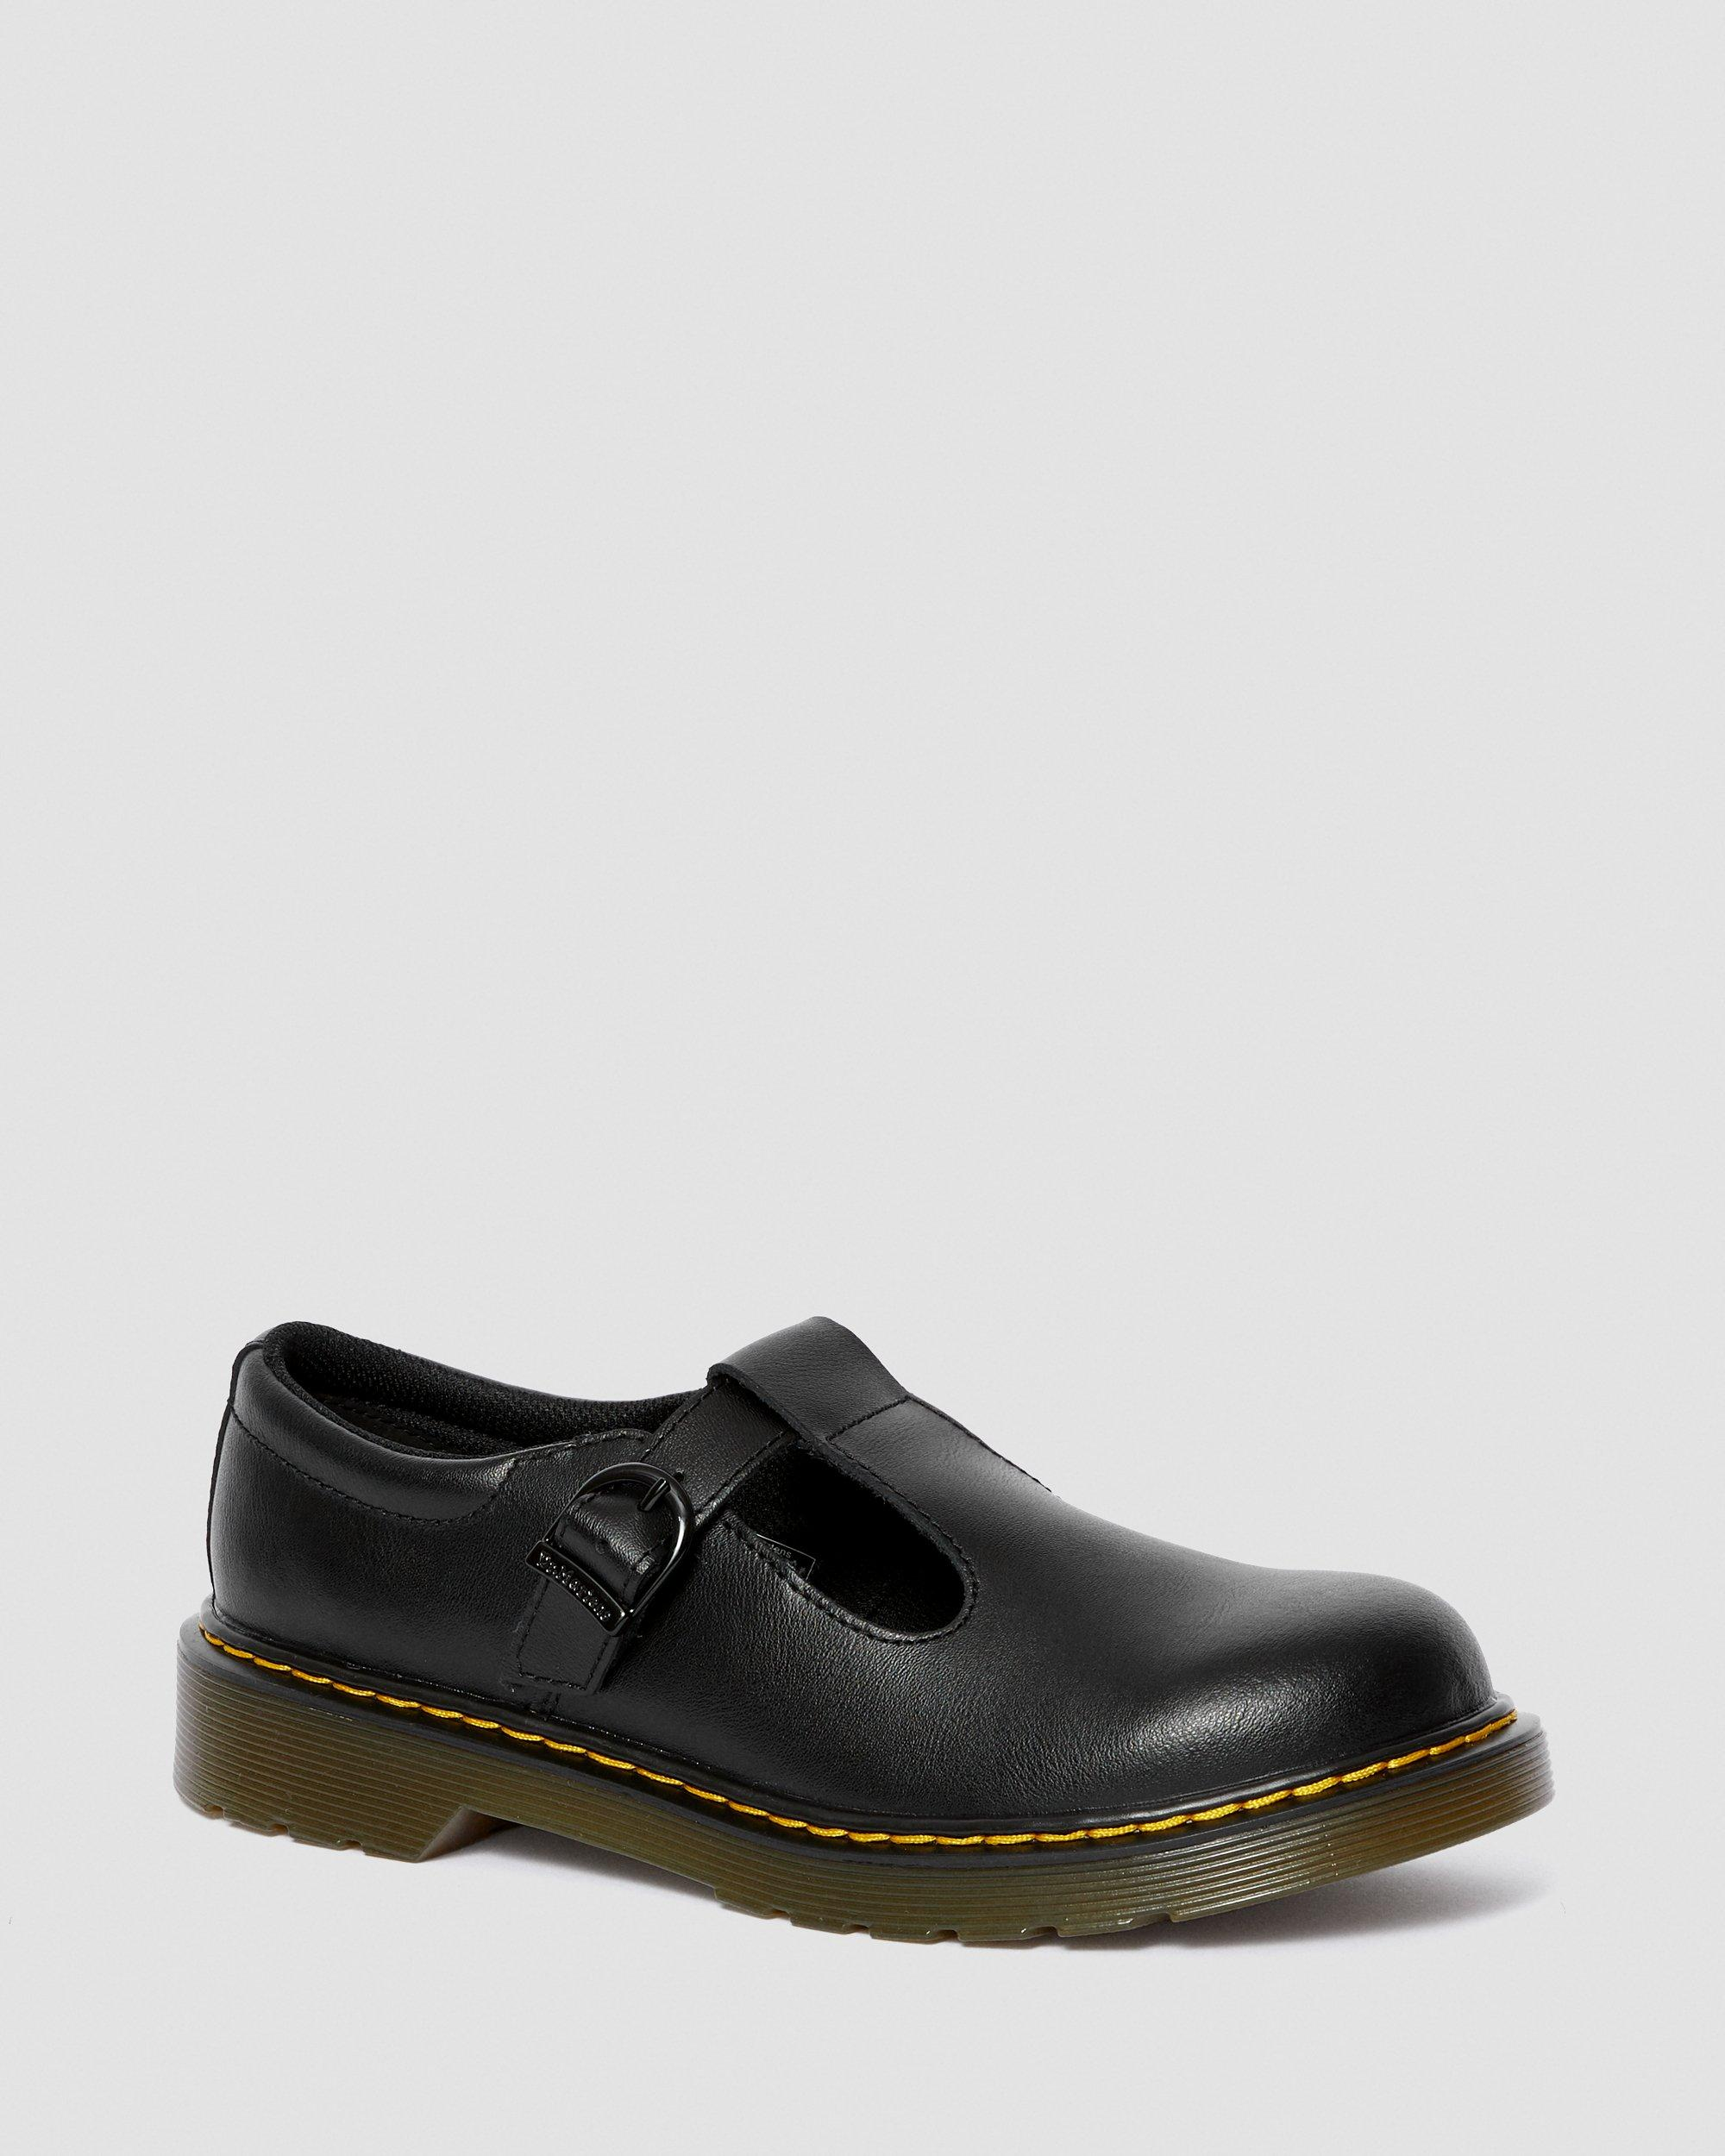 YOUTH POLLEY   Dr. Martens Official